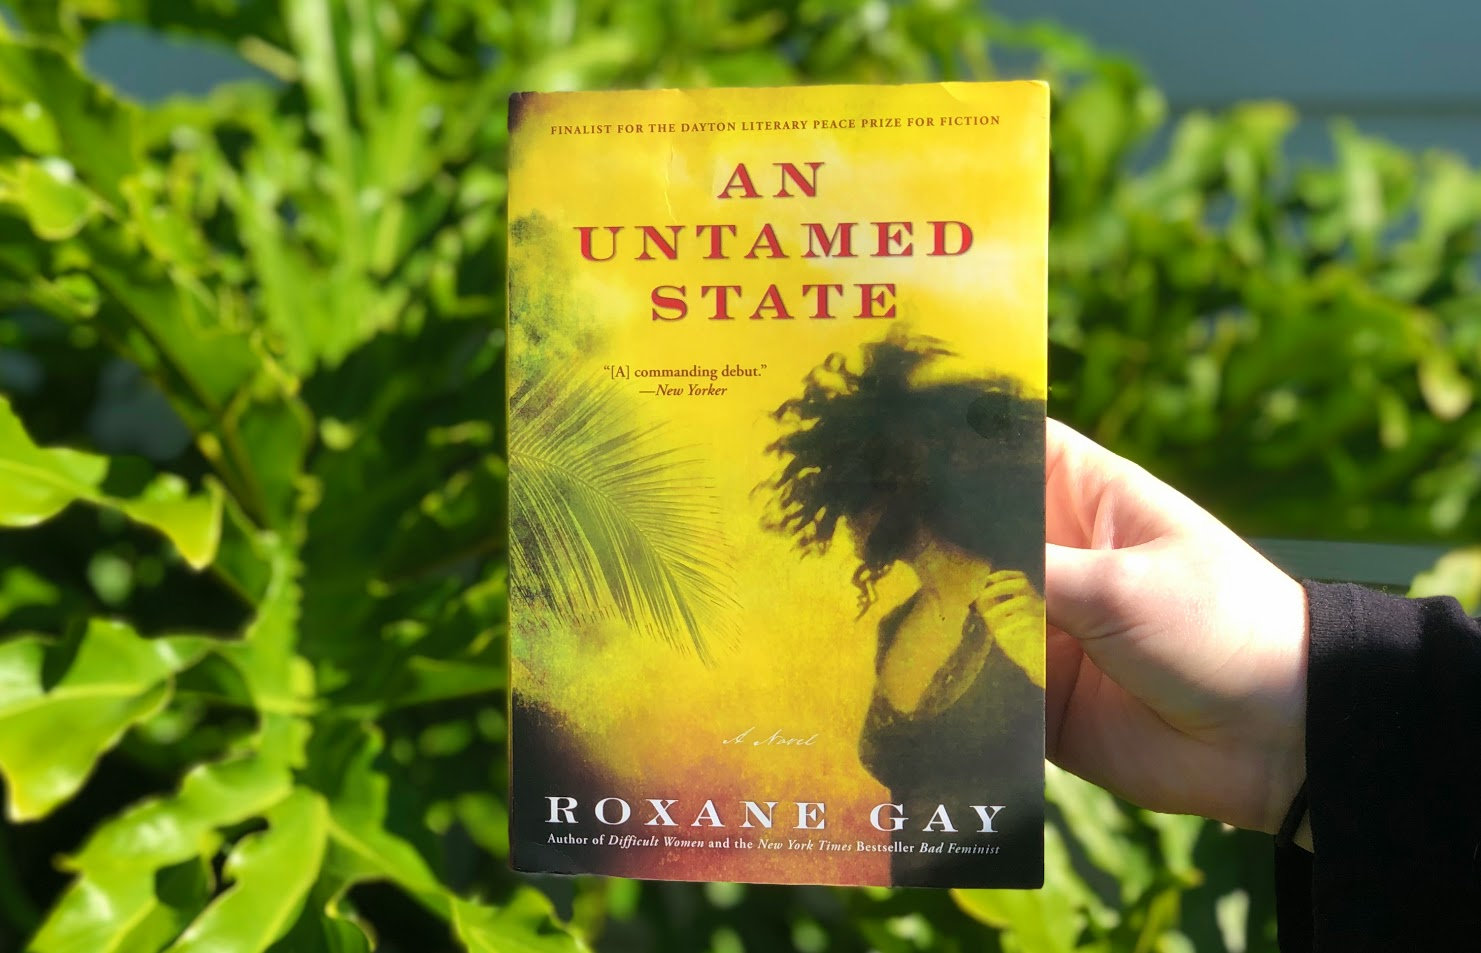 An Untamed State, Roxane Gay